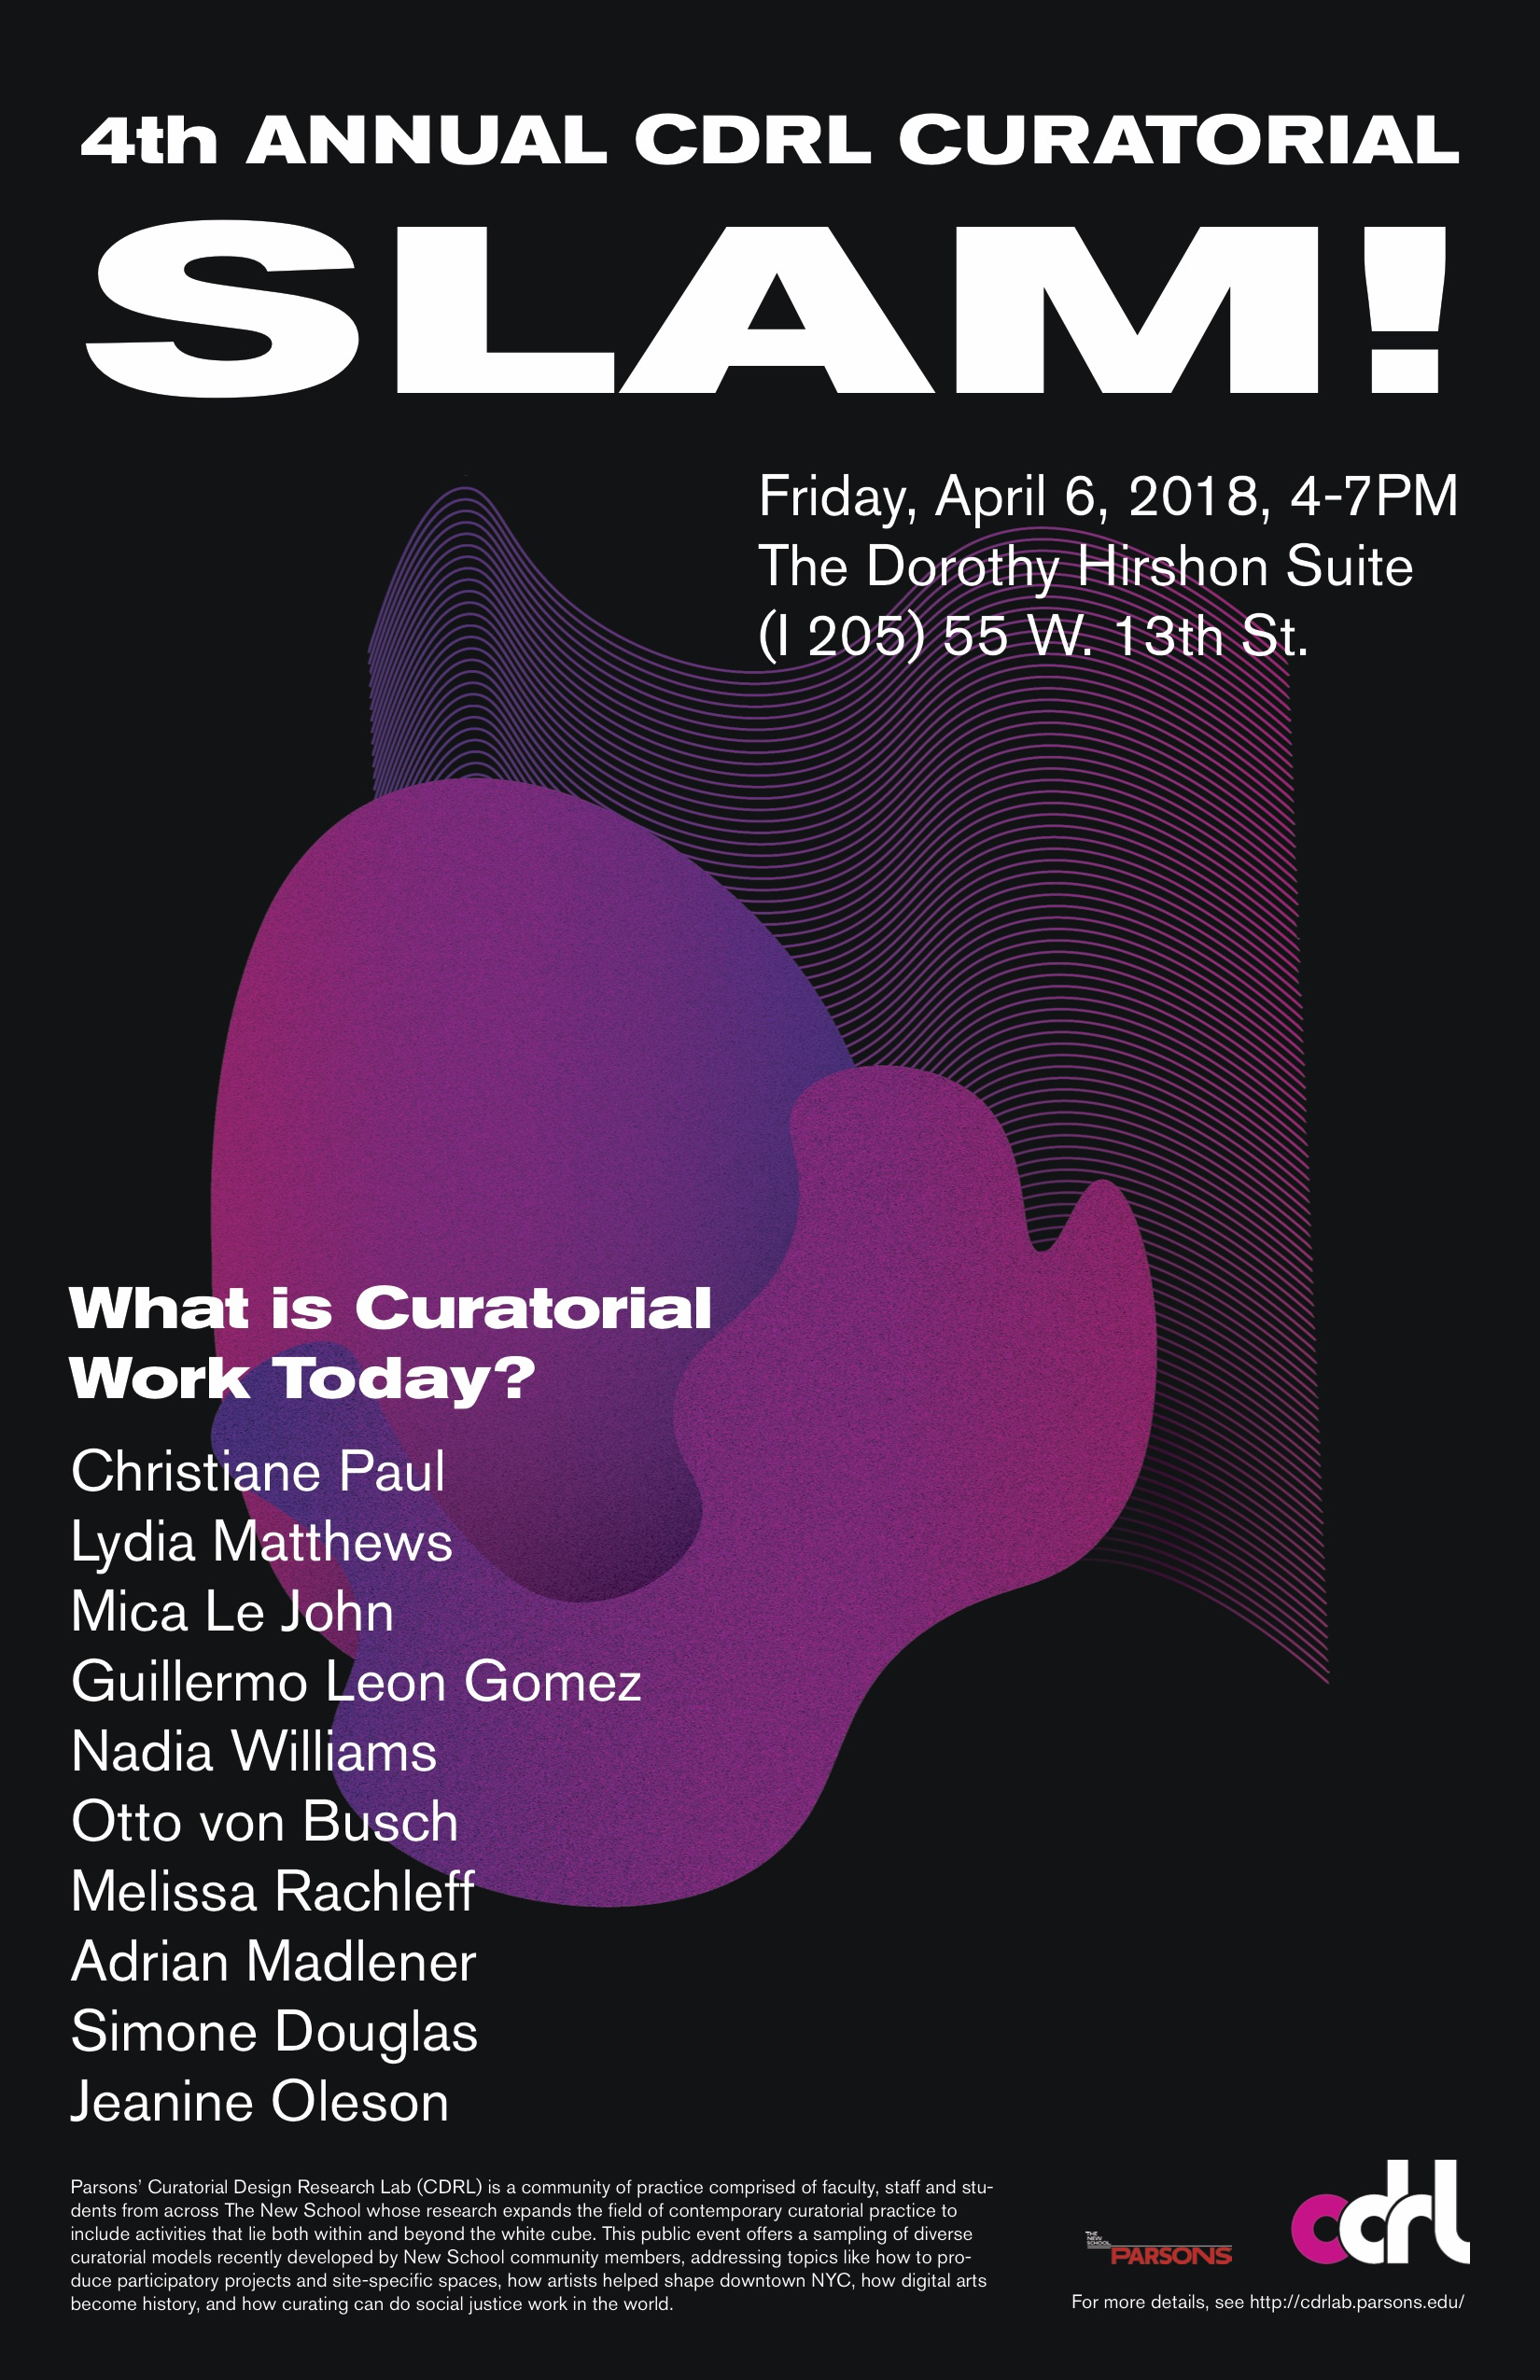 4th Annual CDRL Curatorial Slam! April 6, 2018, 4-7pm